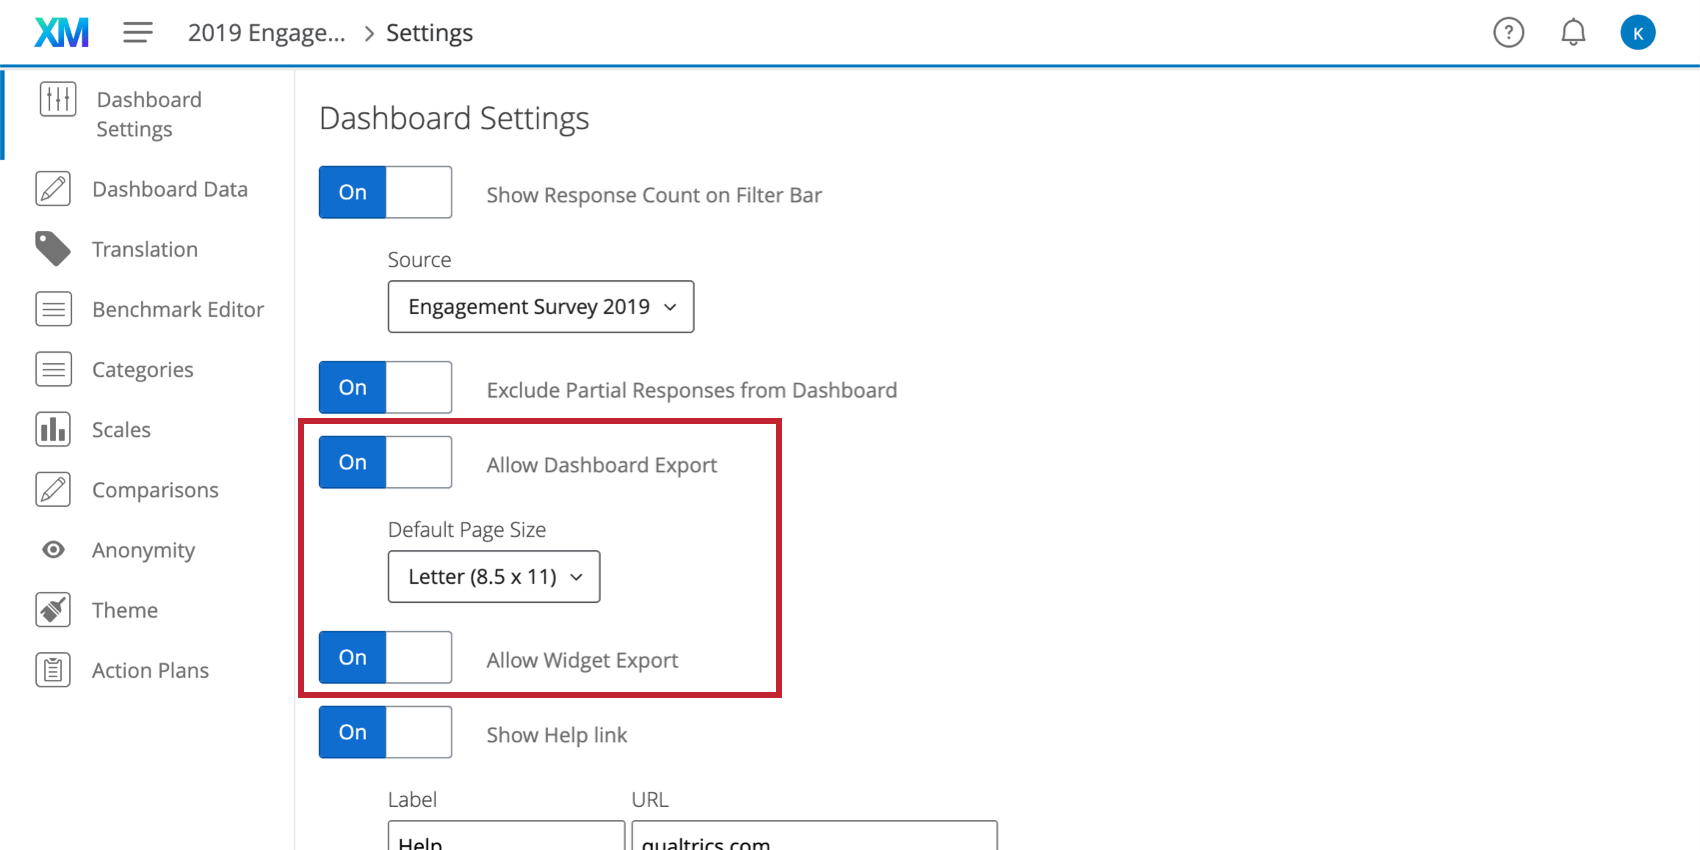 Allow Dashboard Export and Allow Widget Export on the settings section of the settings page